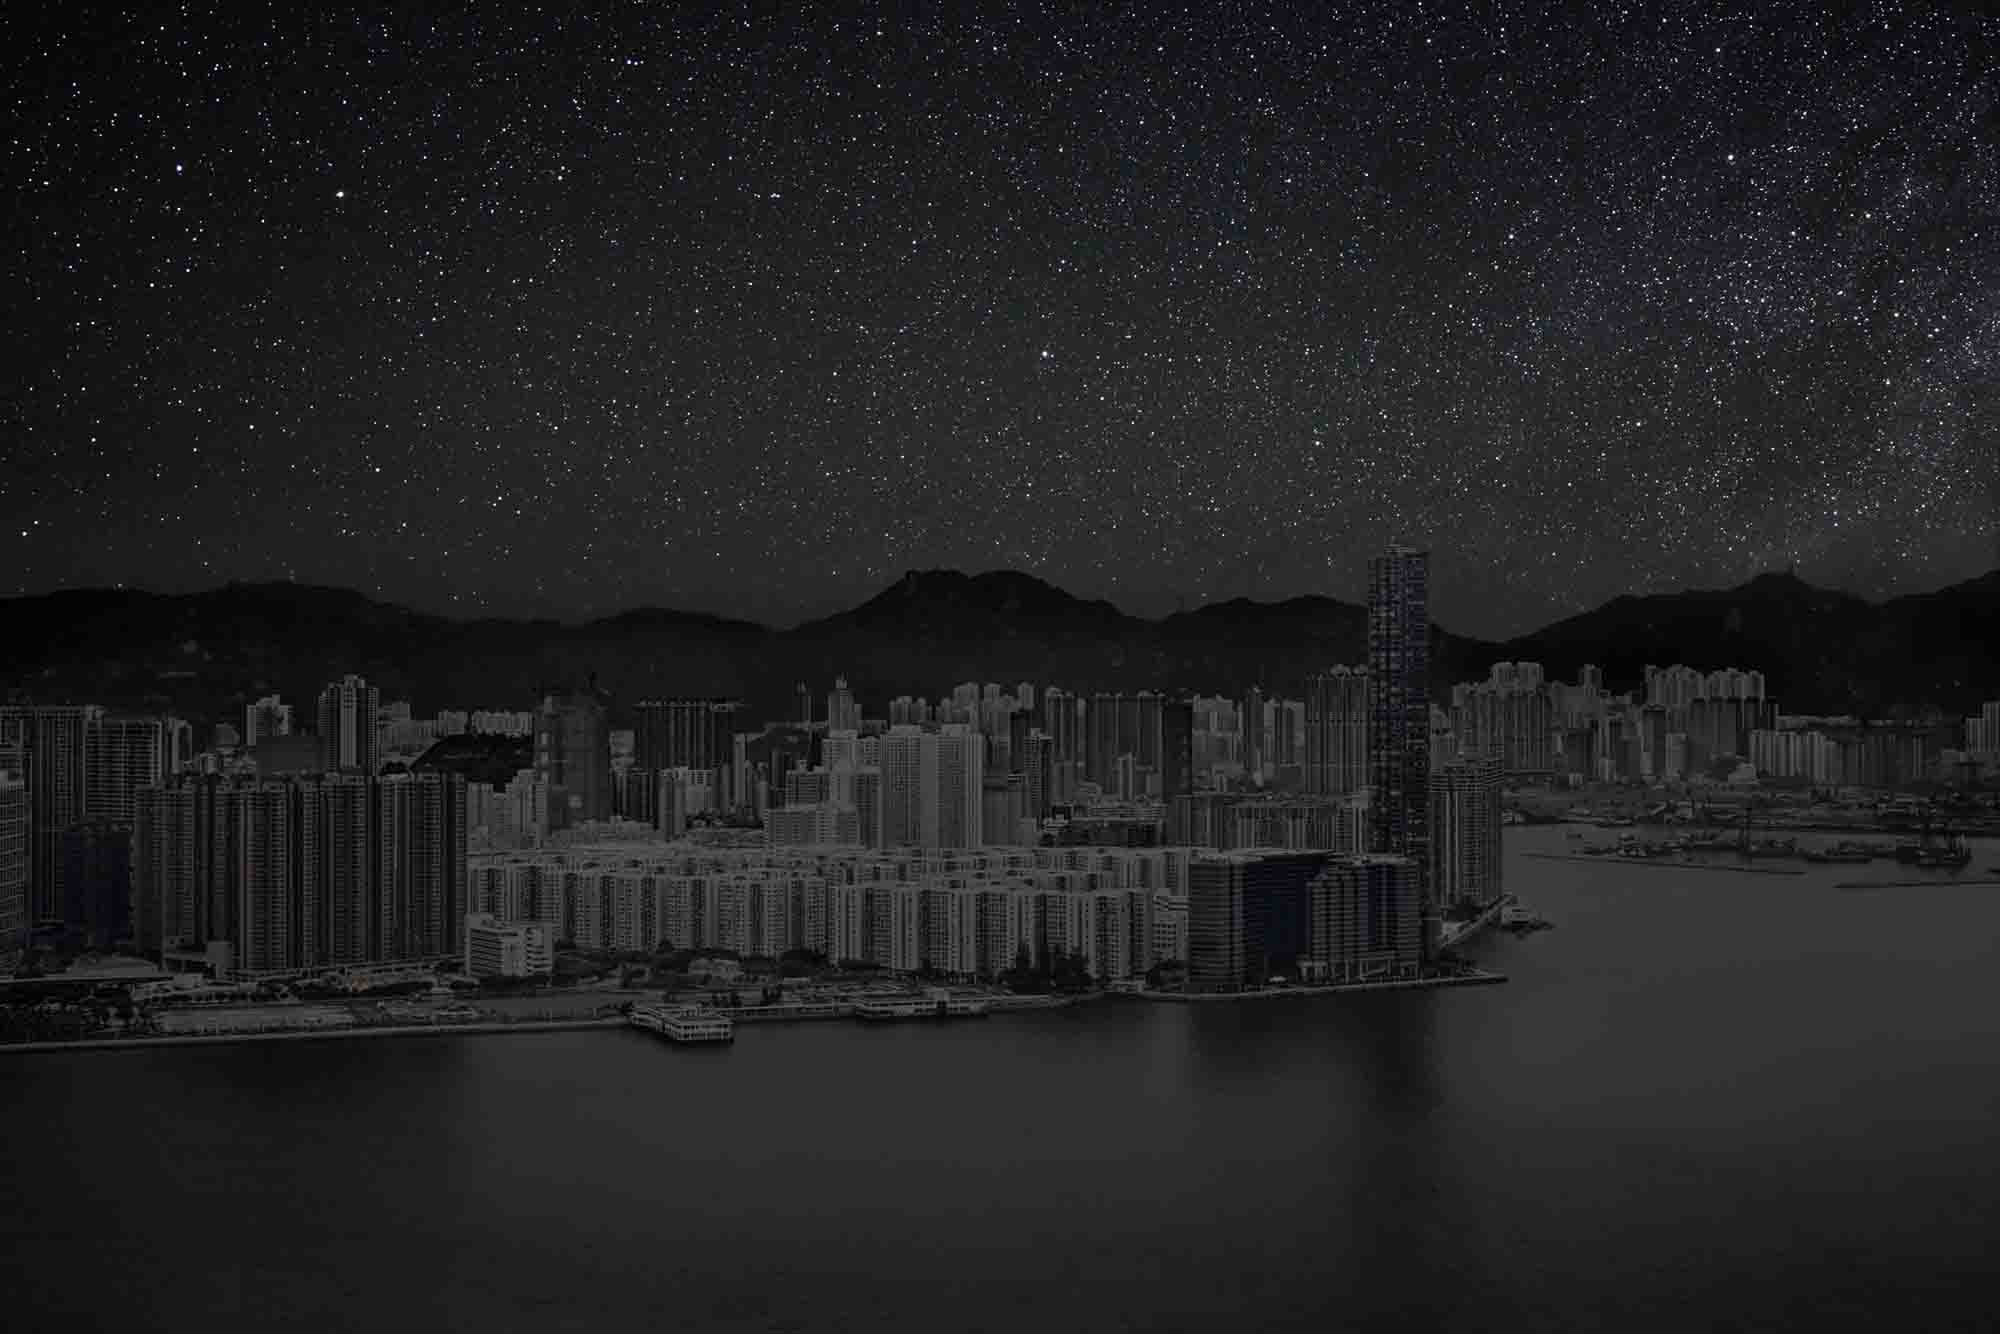 Hong Kong 22° 17' 22'' N 2012-03-23 lst 16:16<br/>Darkened Cities - Villes éteintes